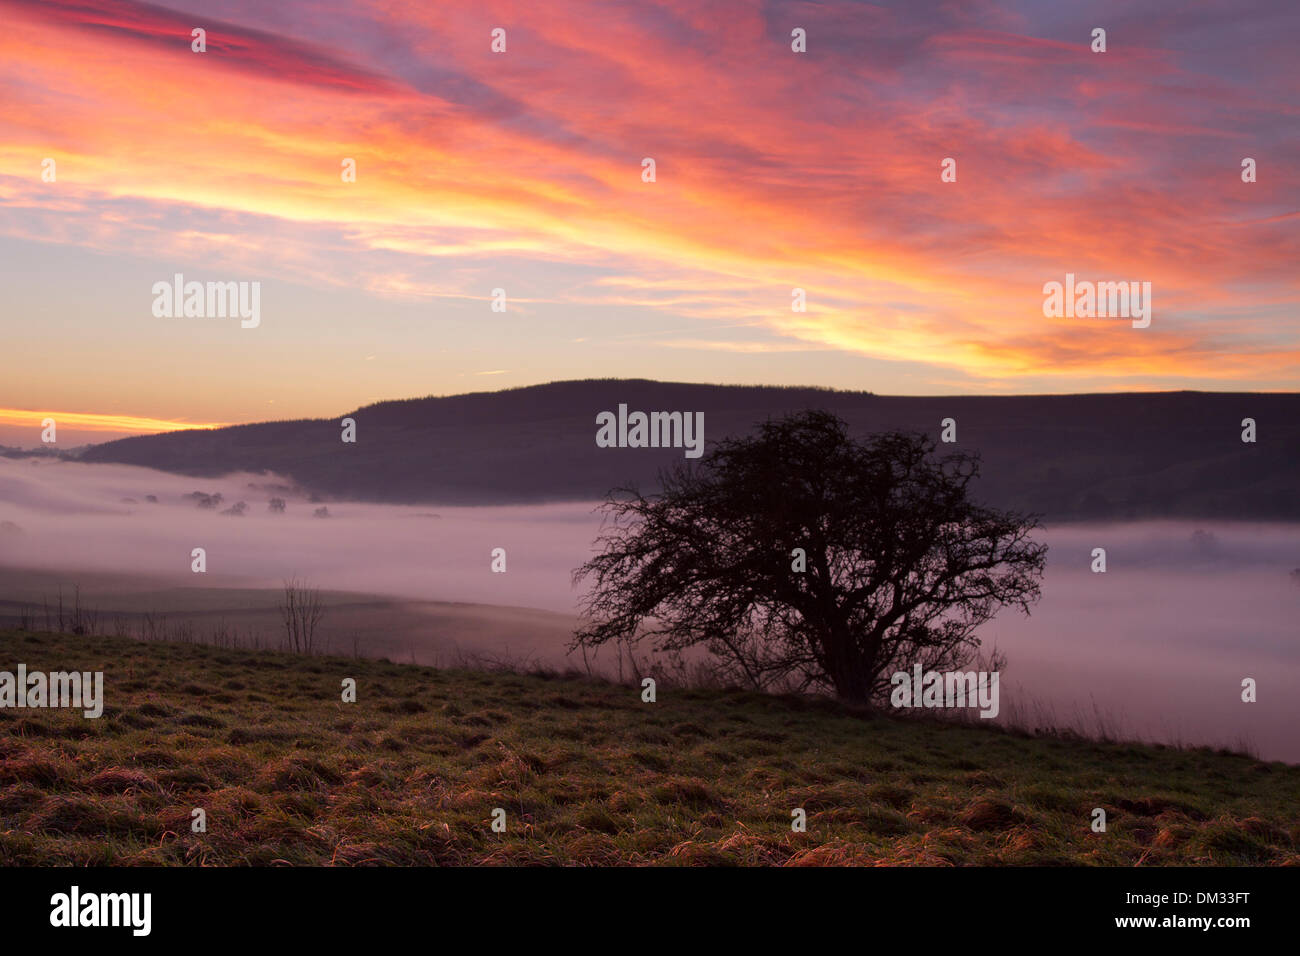 Middleham, Yorkshire, UK. 11th December 2013.  Early morning Weather at Dawn with mist, Fog & Inversion Layer.  Sunrise over moorland in the North Yorkshire Dales. A temperature inversion is a meteorological phenomenon in which air temperature increases with height for some distance above the ground, as opposed to the normal decrease in temperature with height. - Stock Image